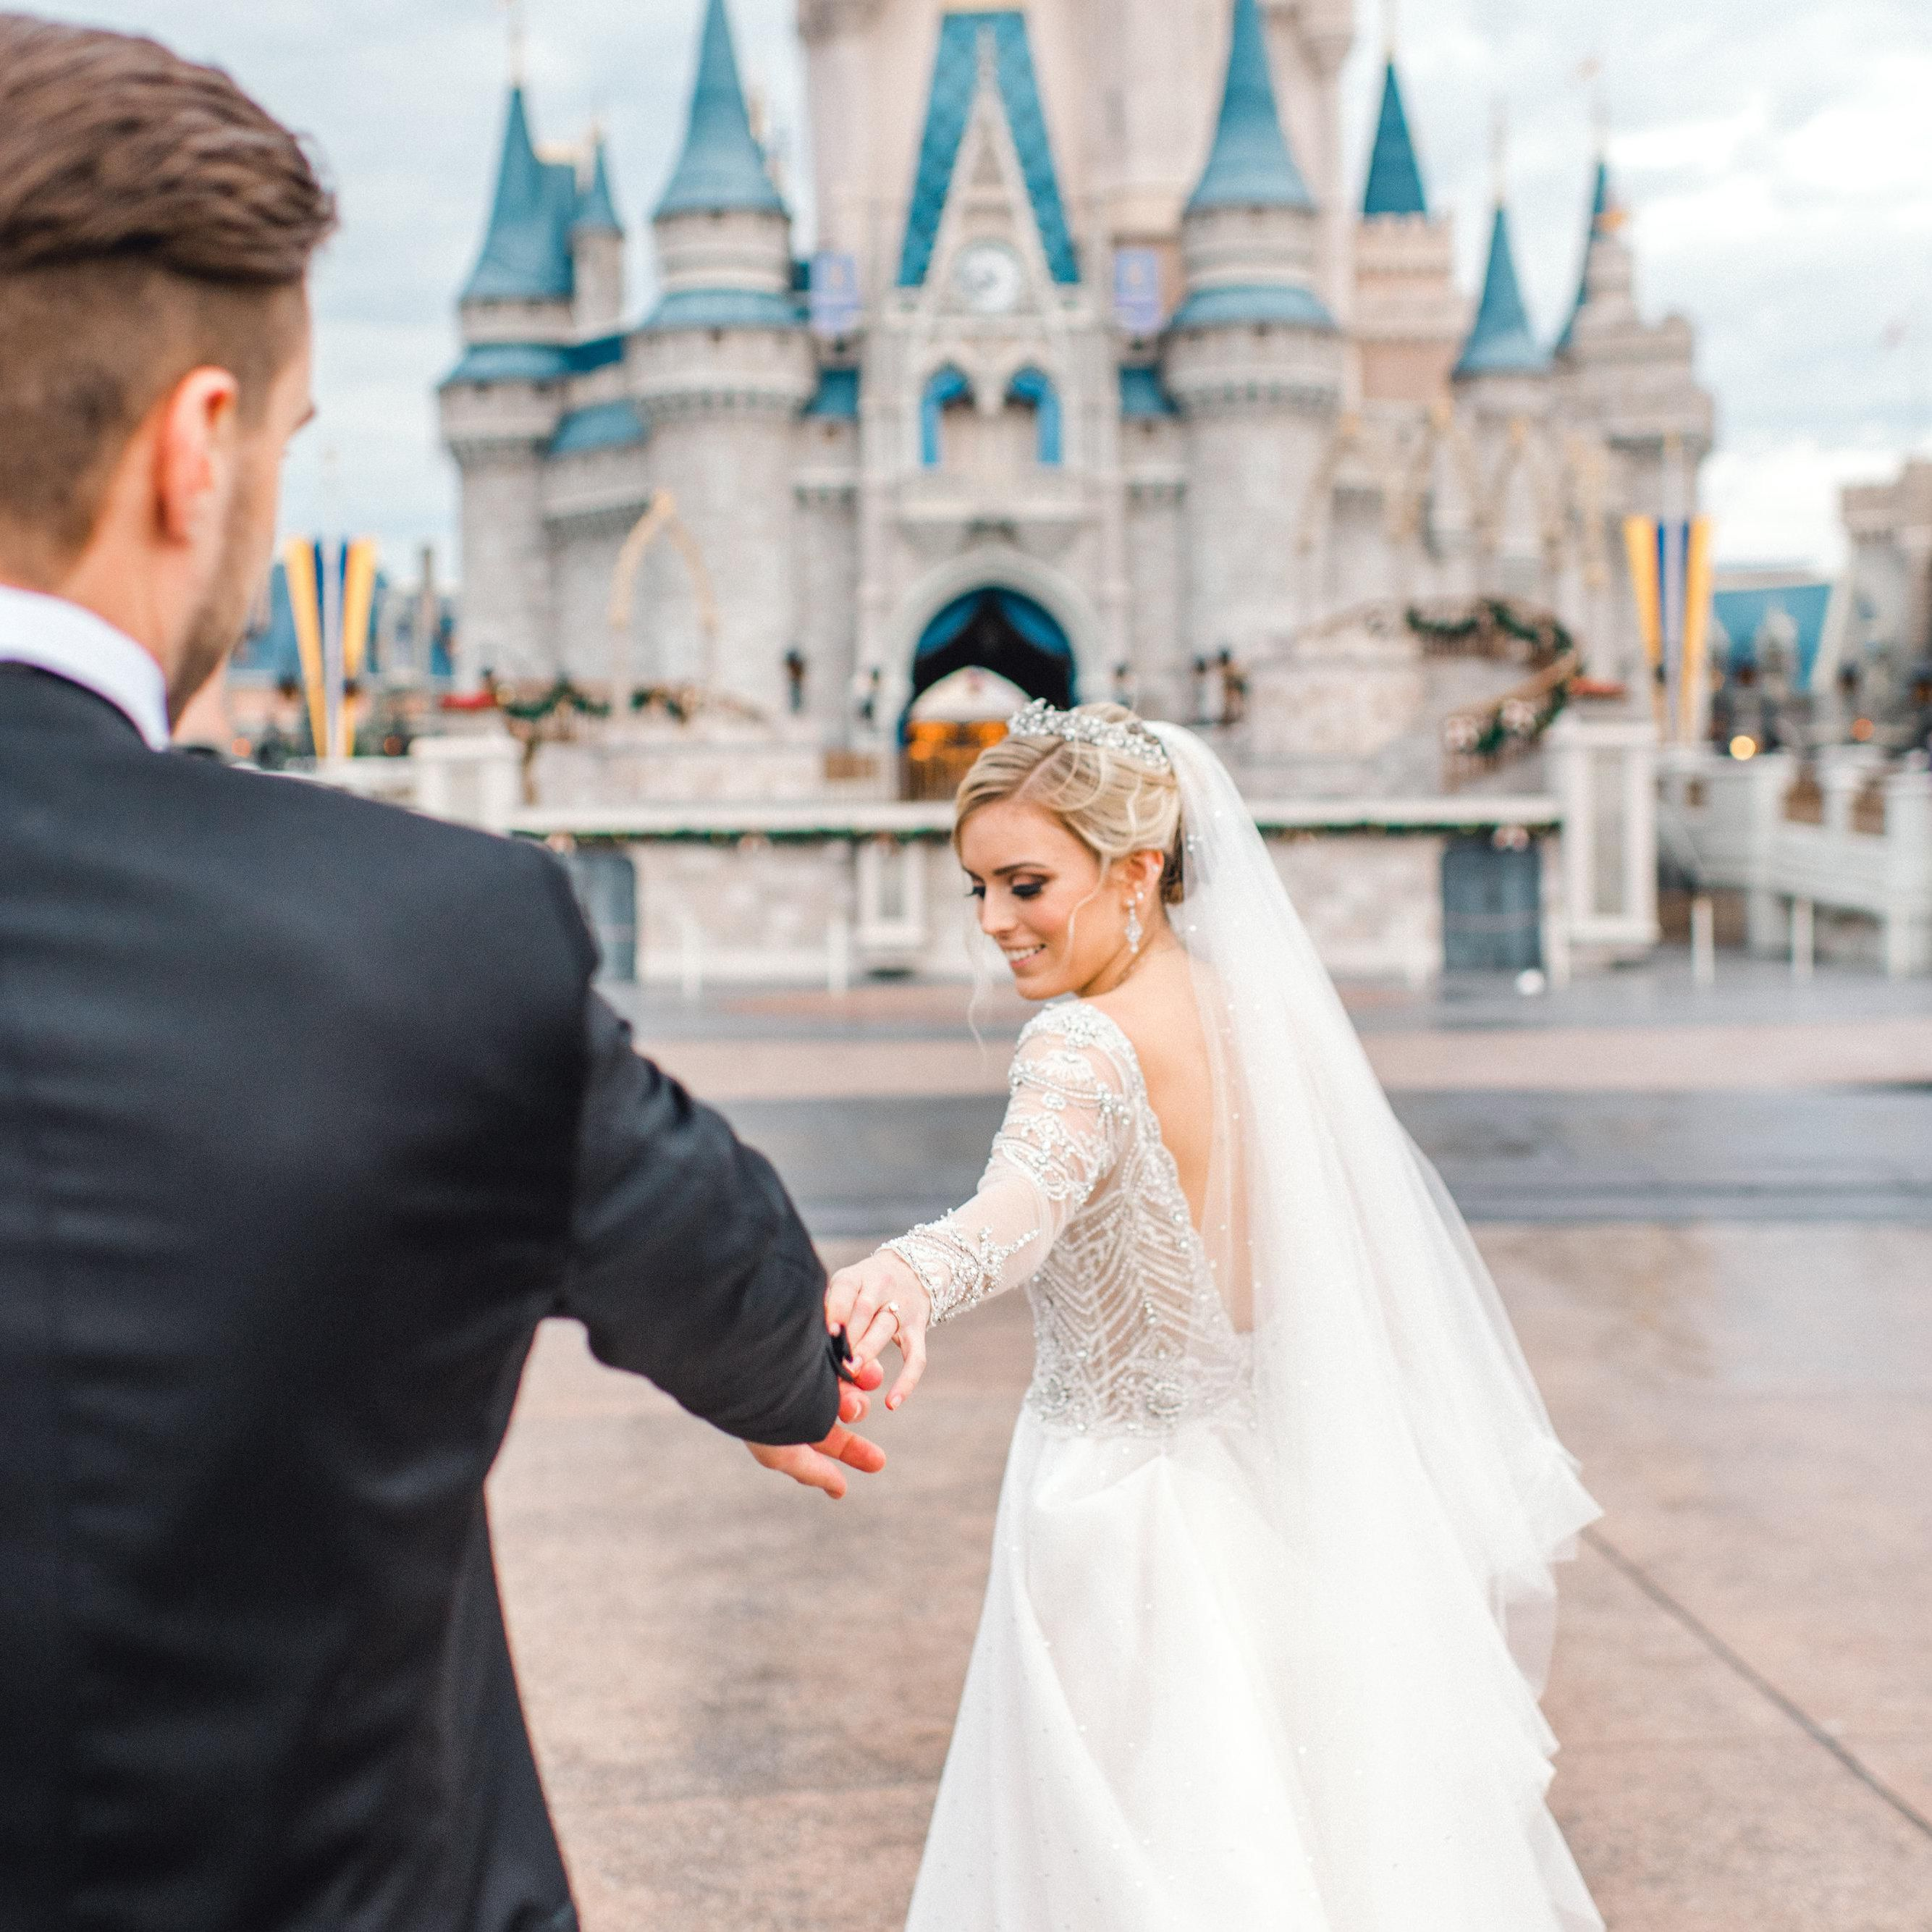 Disney Wedding: Cost and Everything You Need to Know